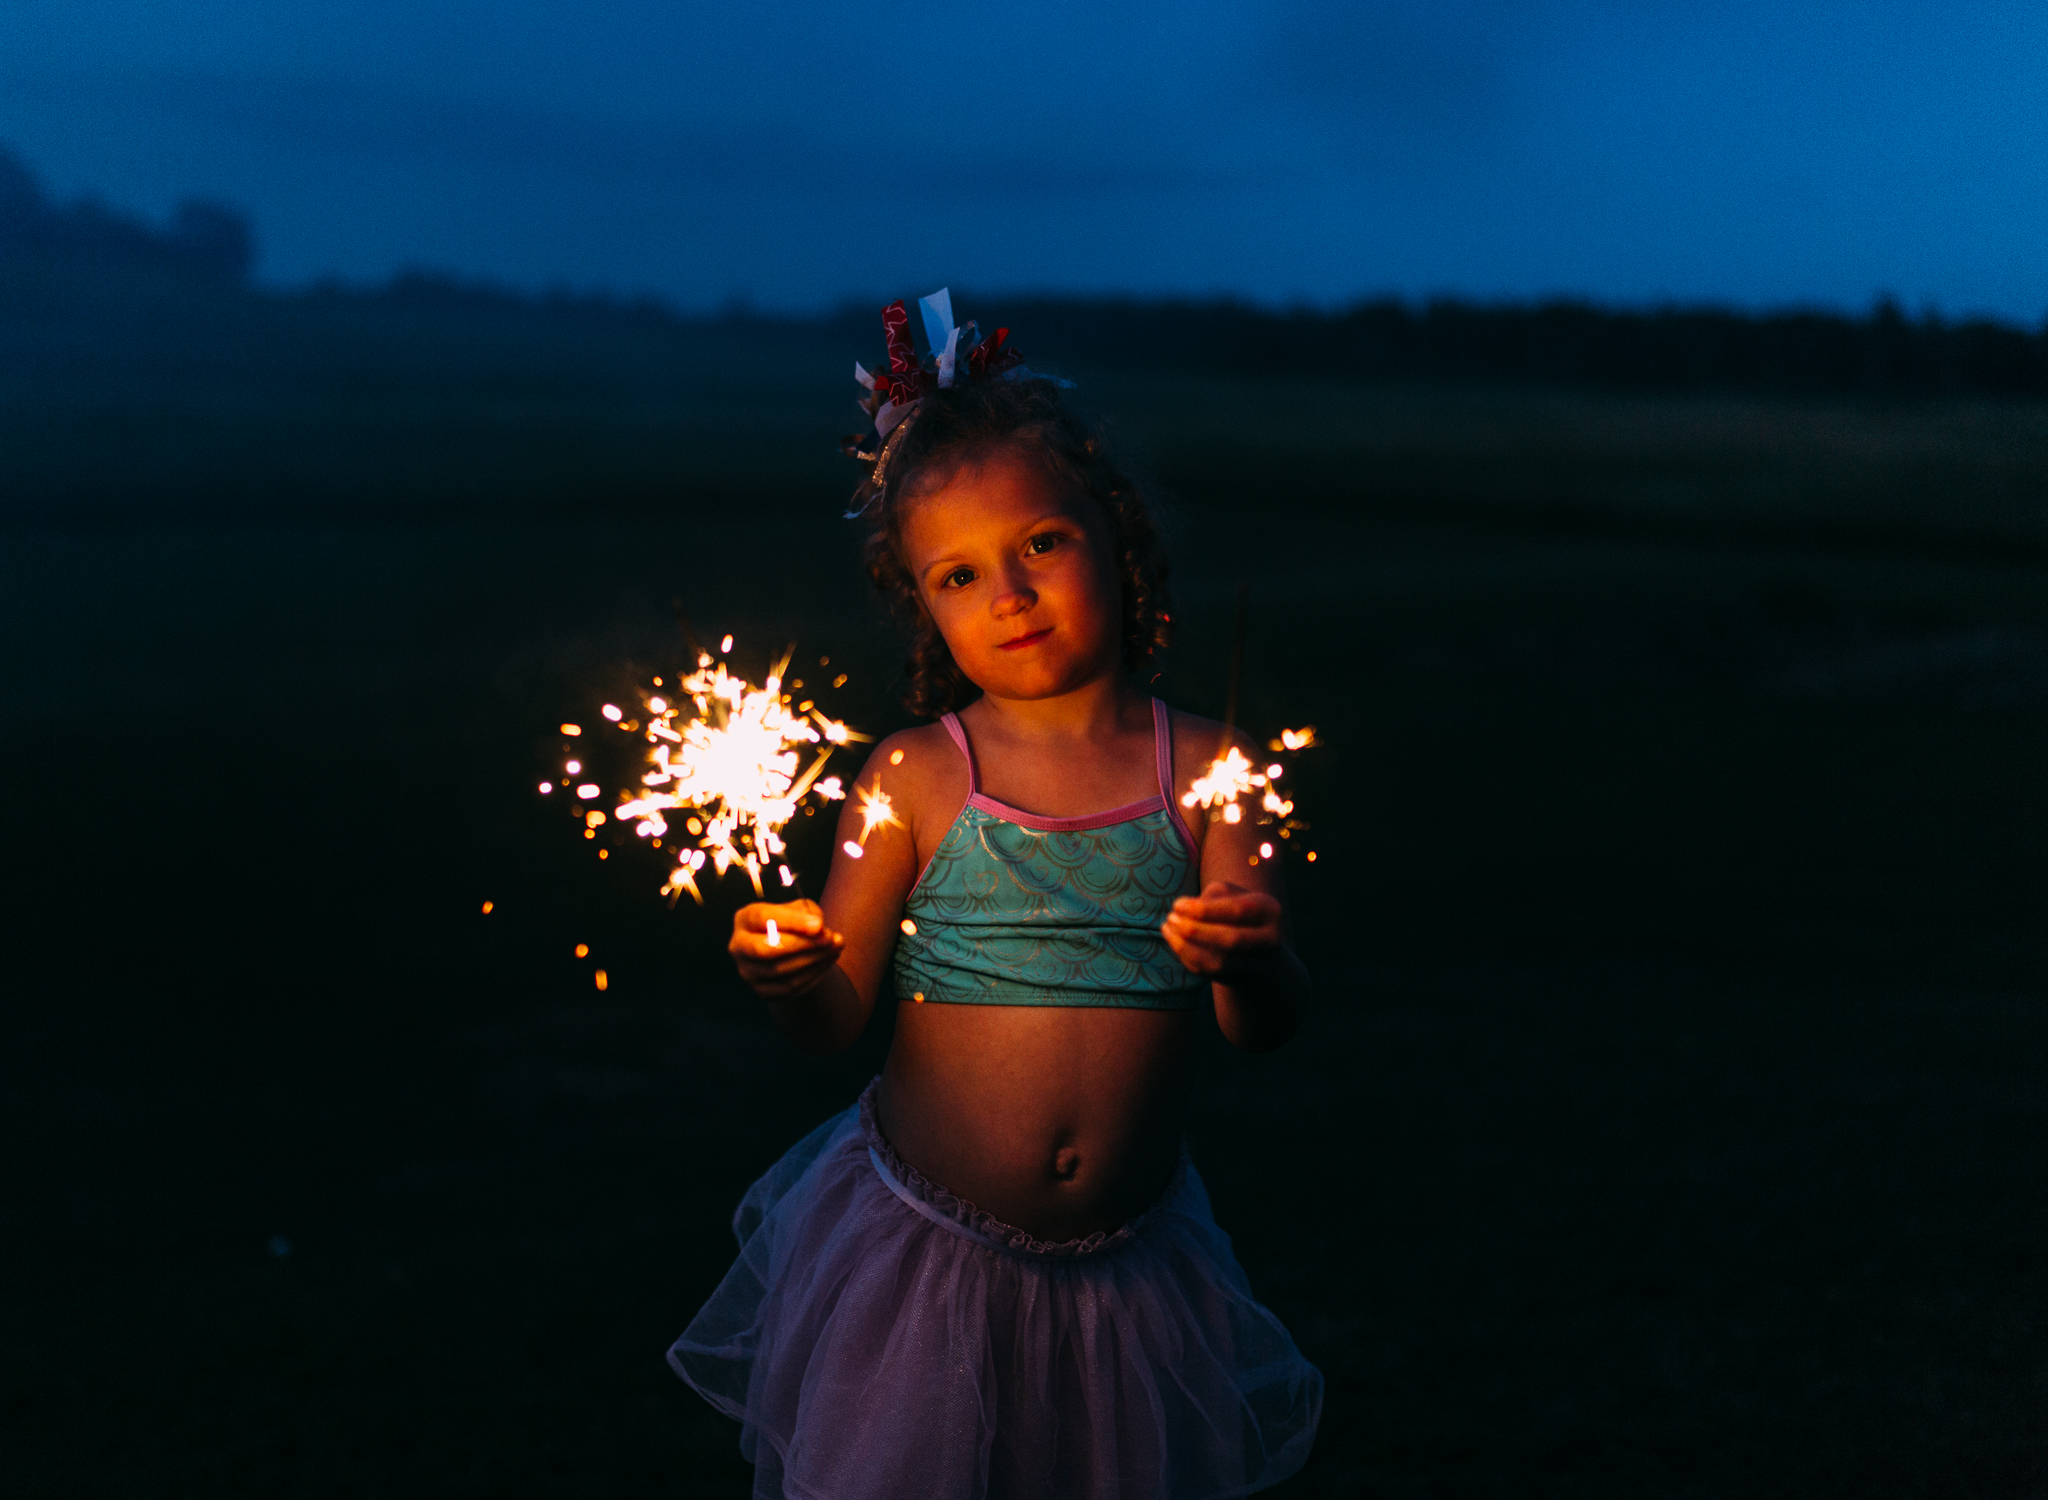 4th-july-fireworks-sparklers-documentary-family-party-photography-9.jpg